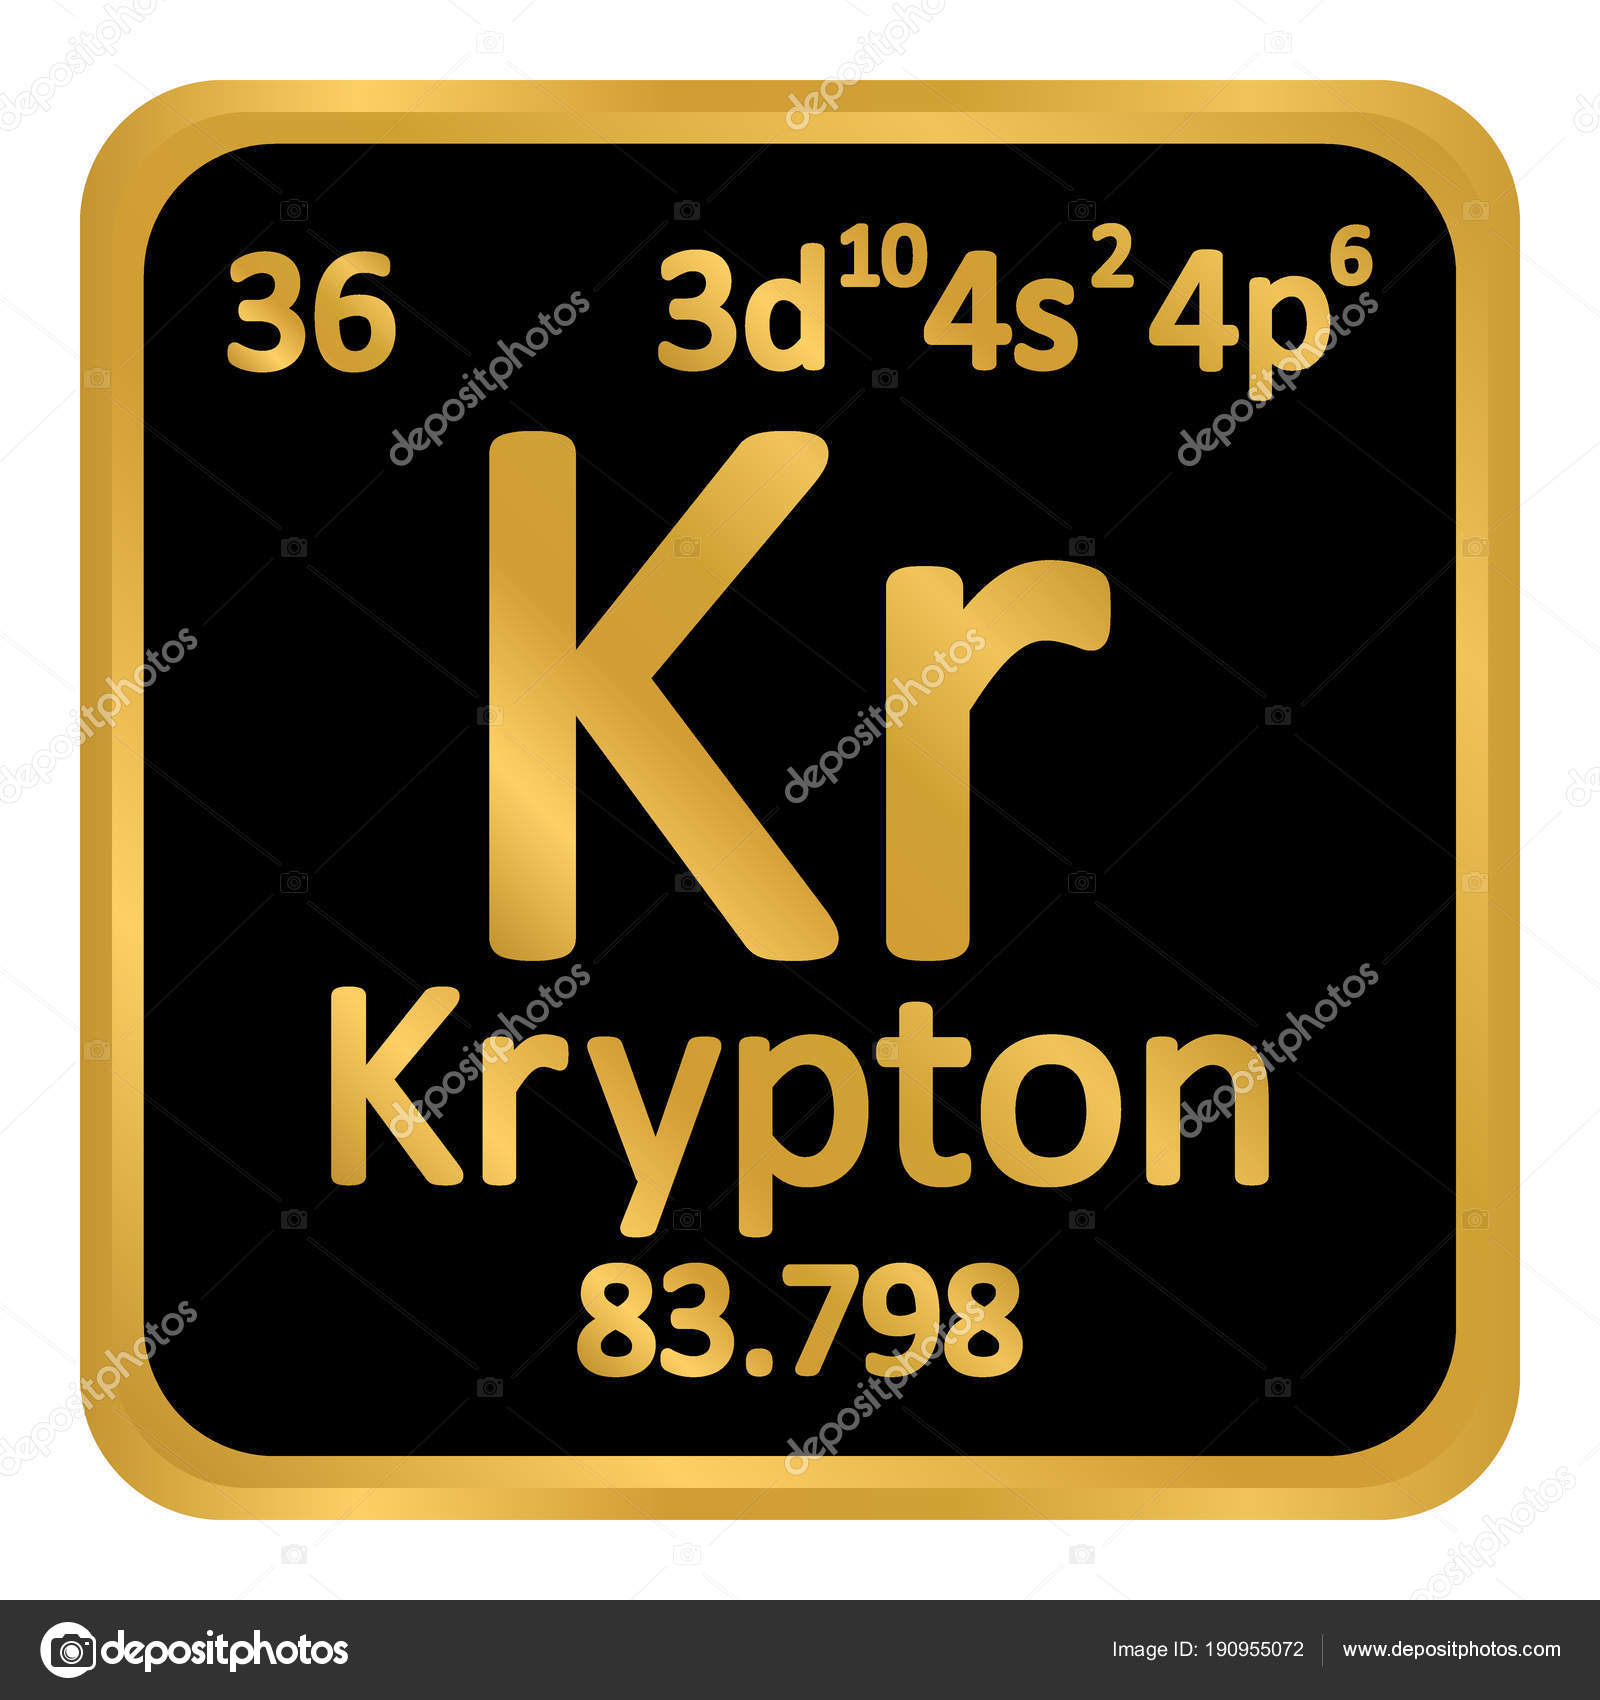 Periodic table element krypton icon stock vector konstsem periodic table element krypton icon stock vector urtaz